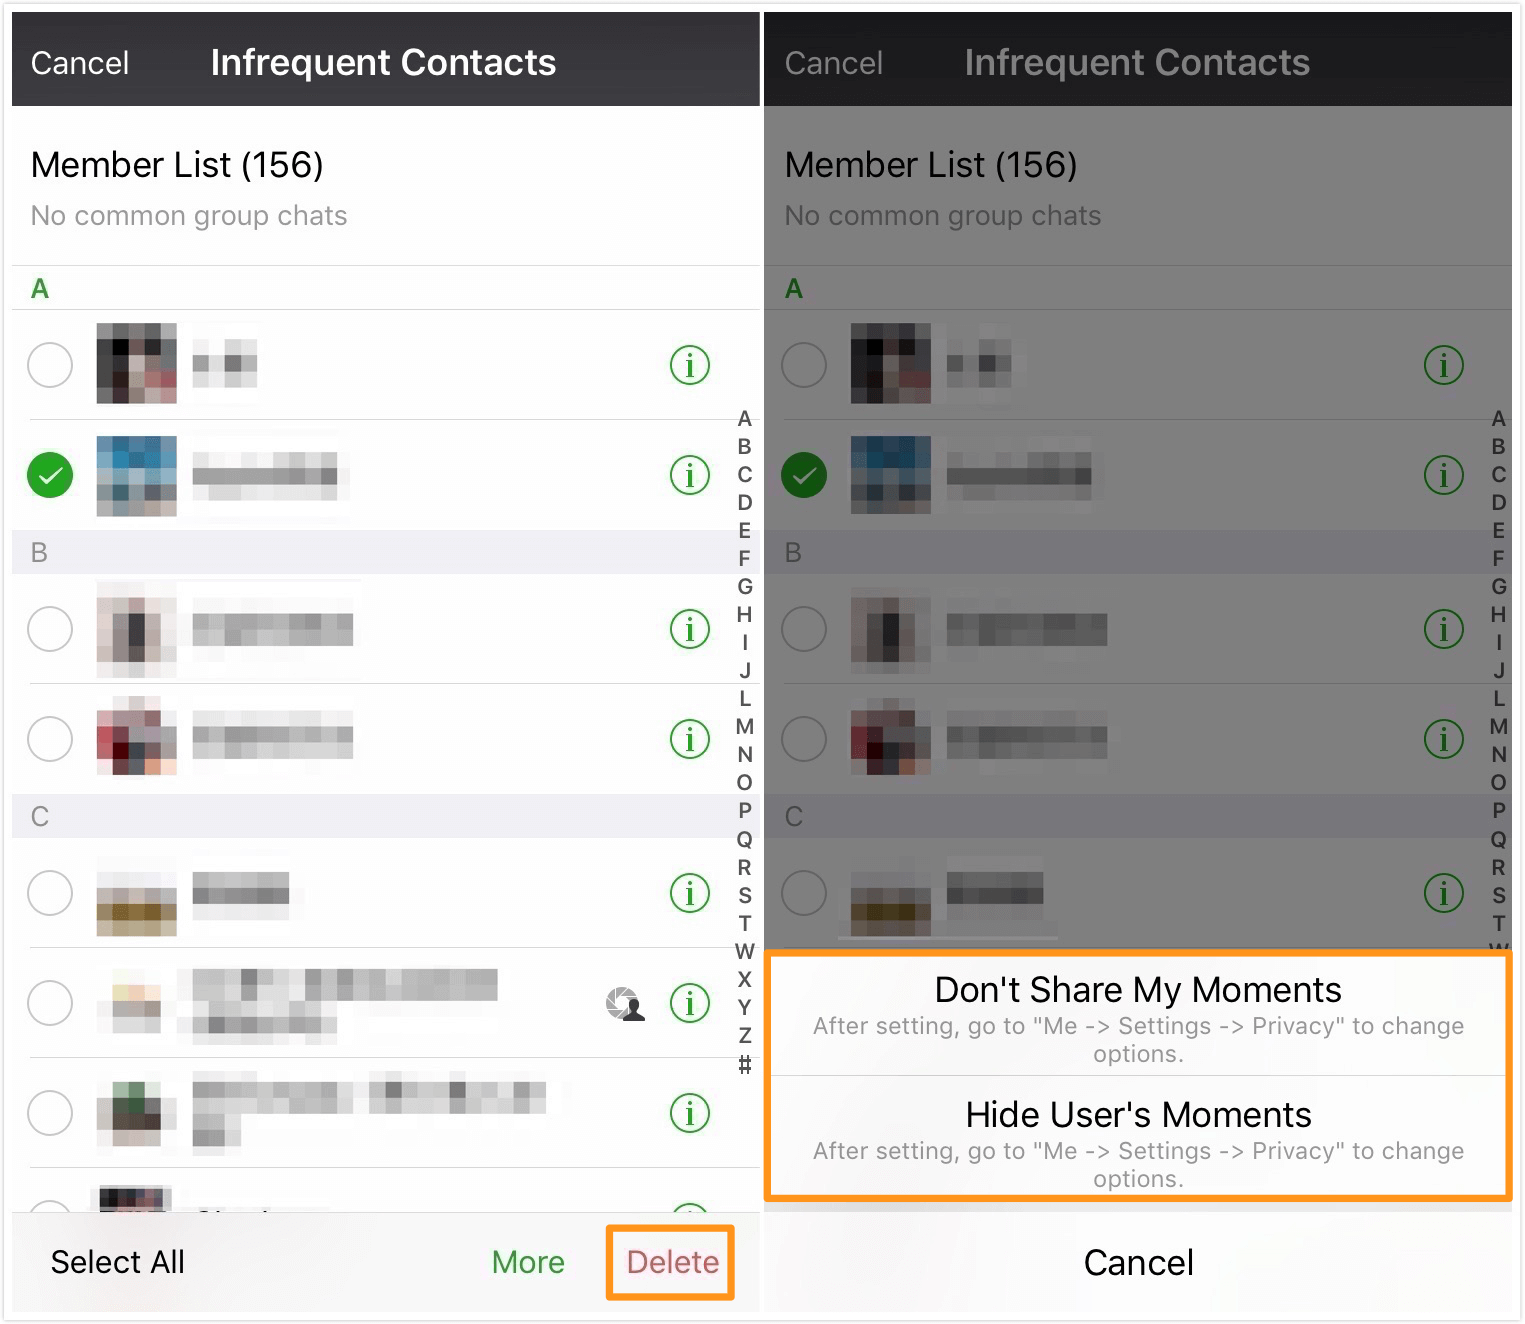 Infrequent Contacts Compile 2